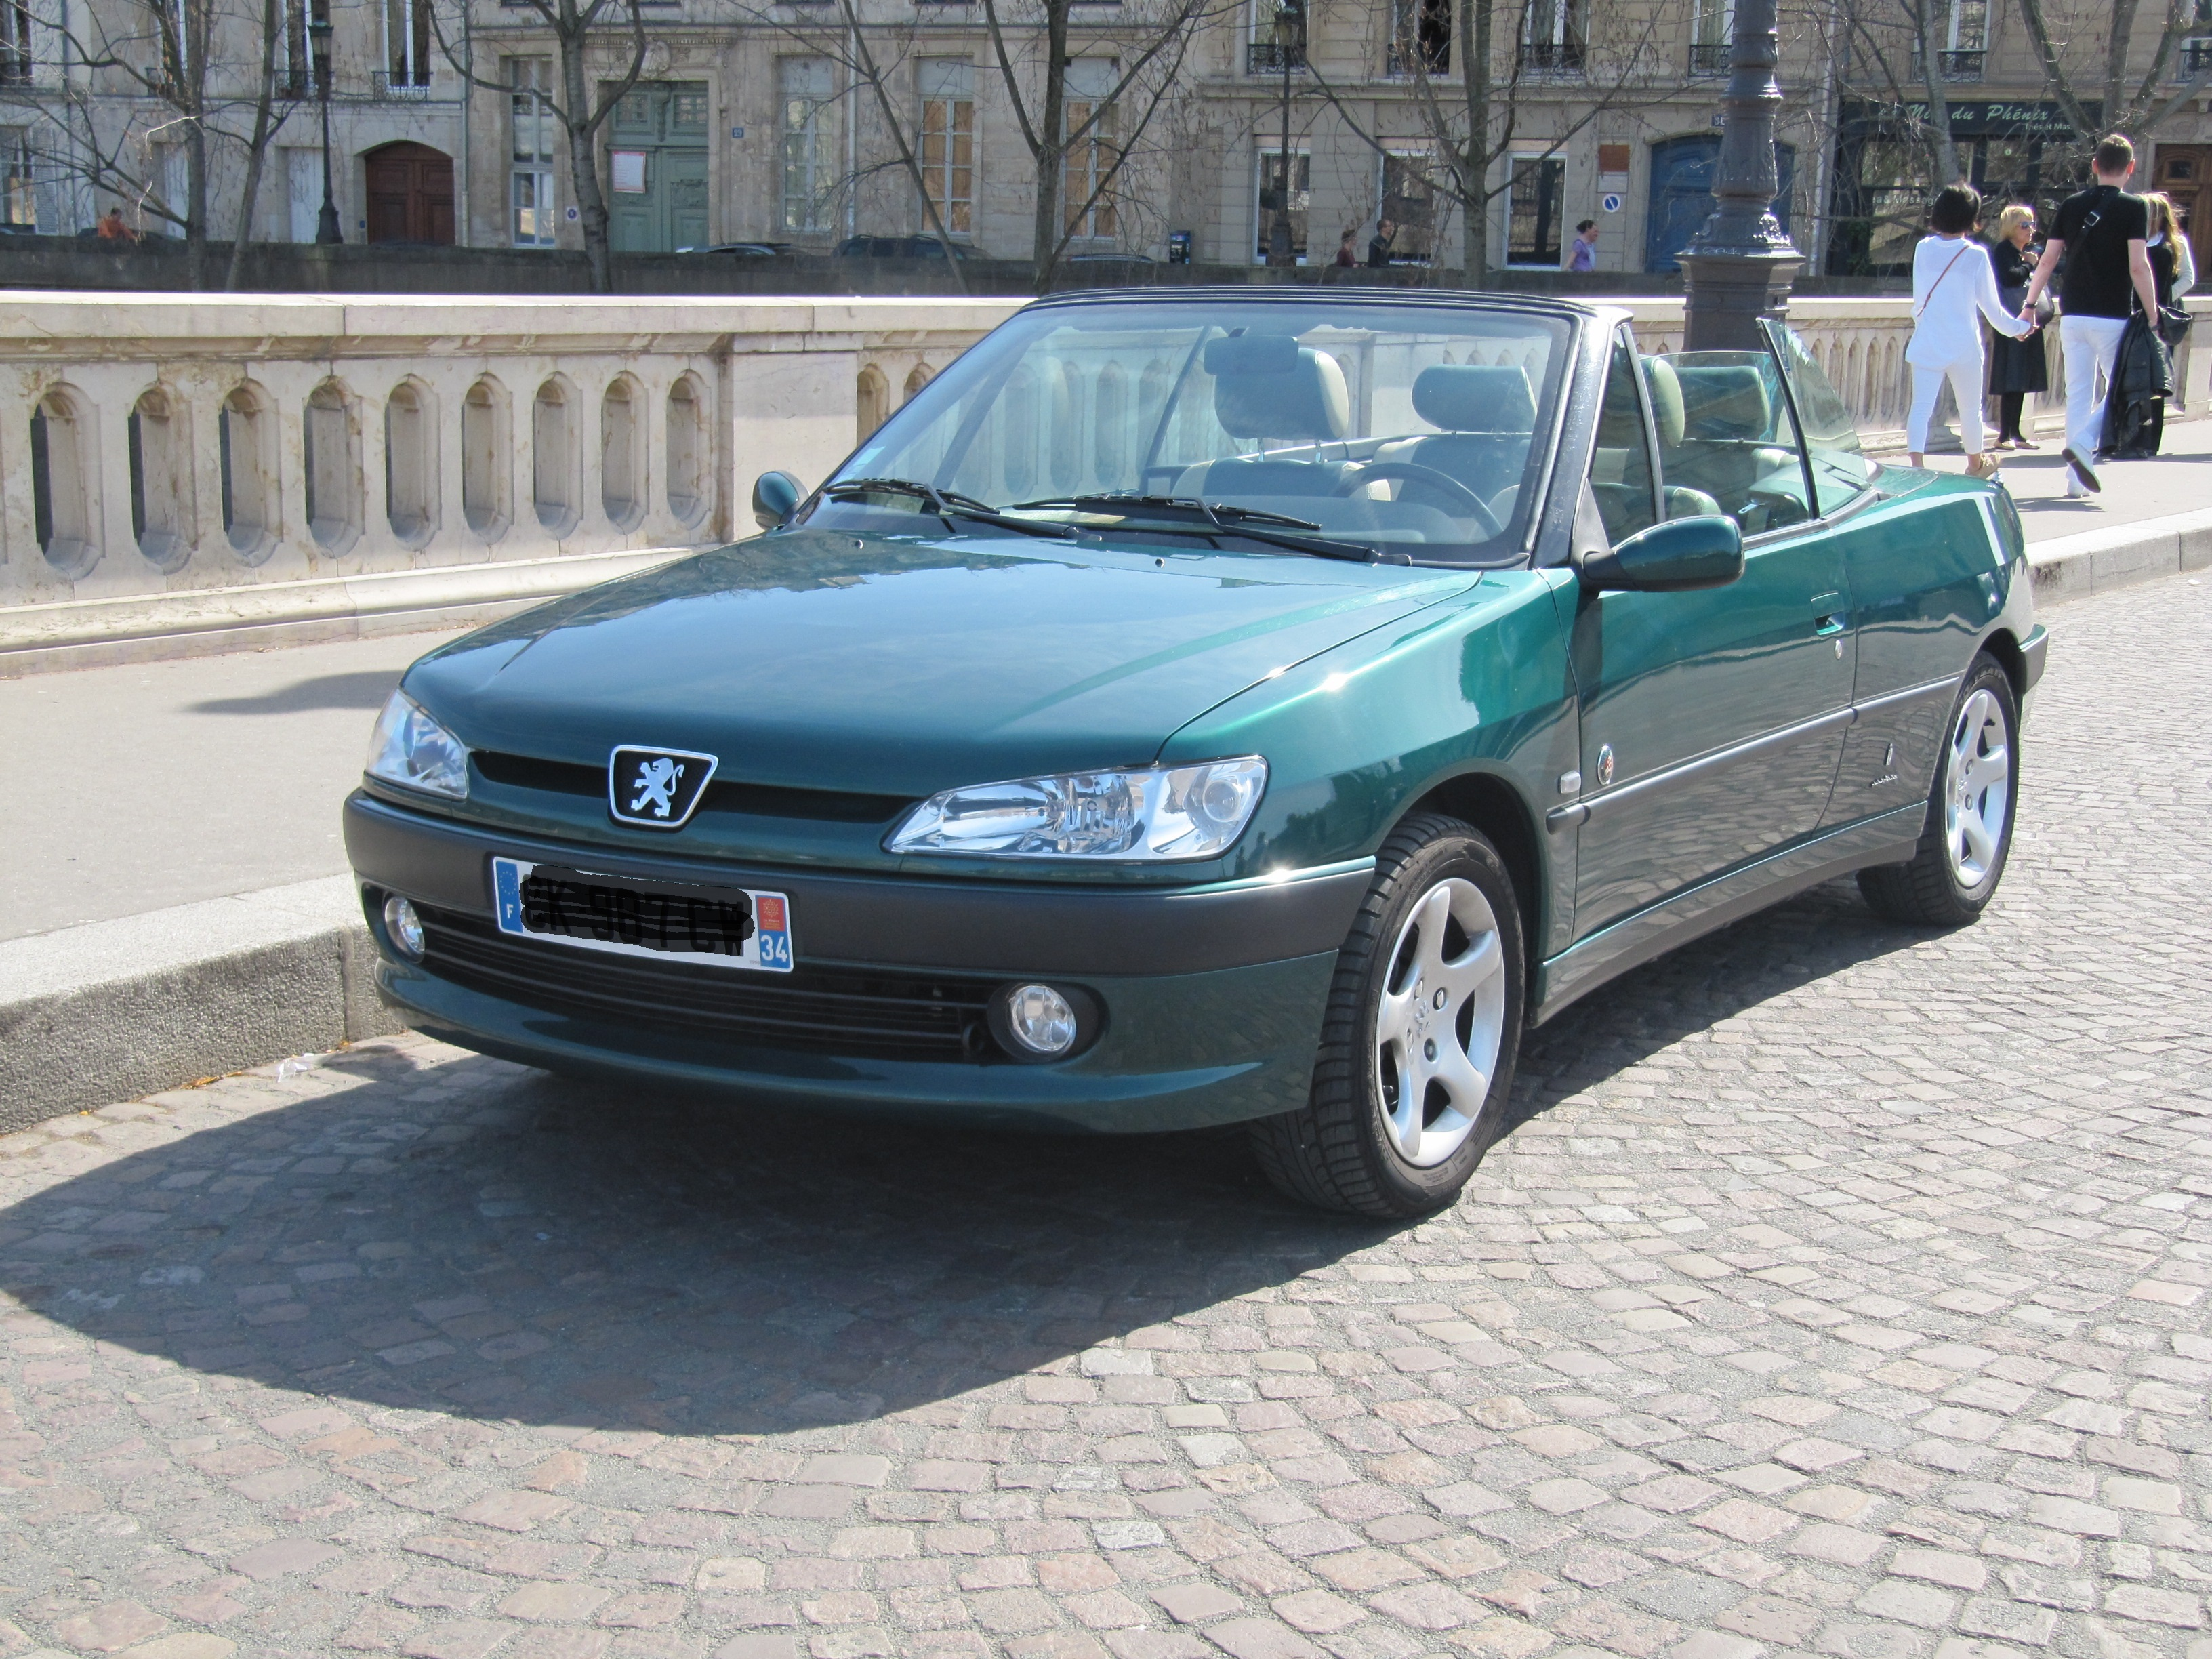 fichier peugeot 306 cabriolet roland garros 2001 jpg. Black Bedroom Furniture Sets. Home Design Ideas